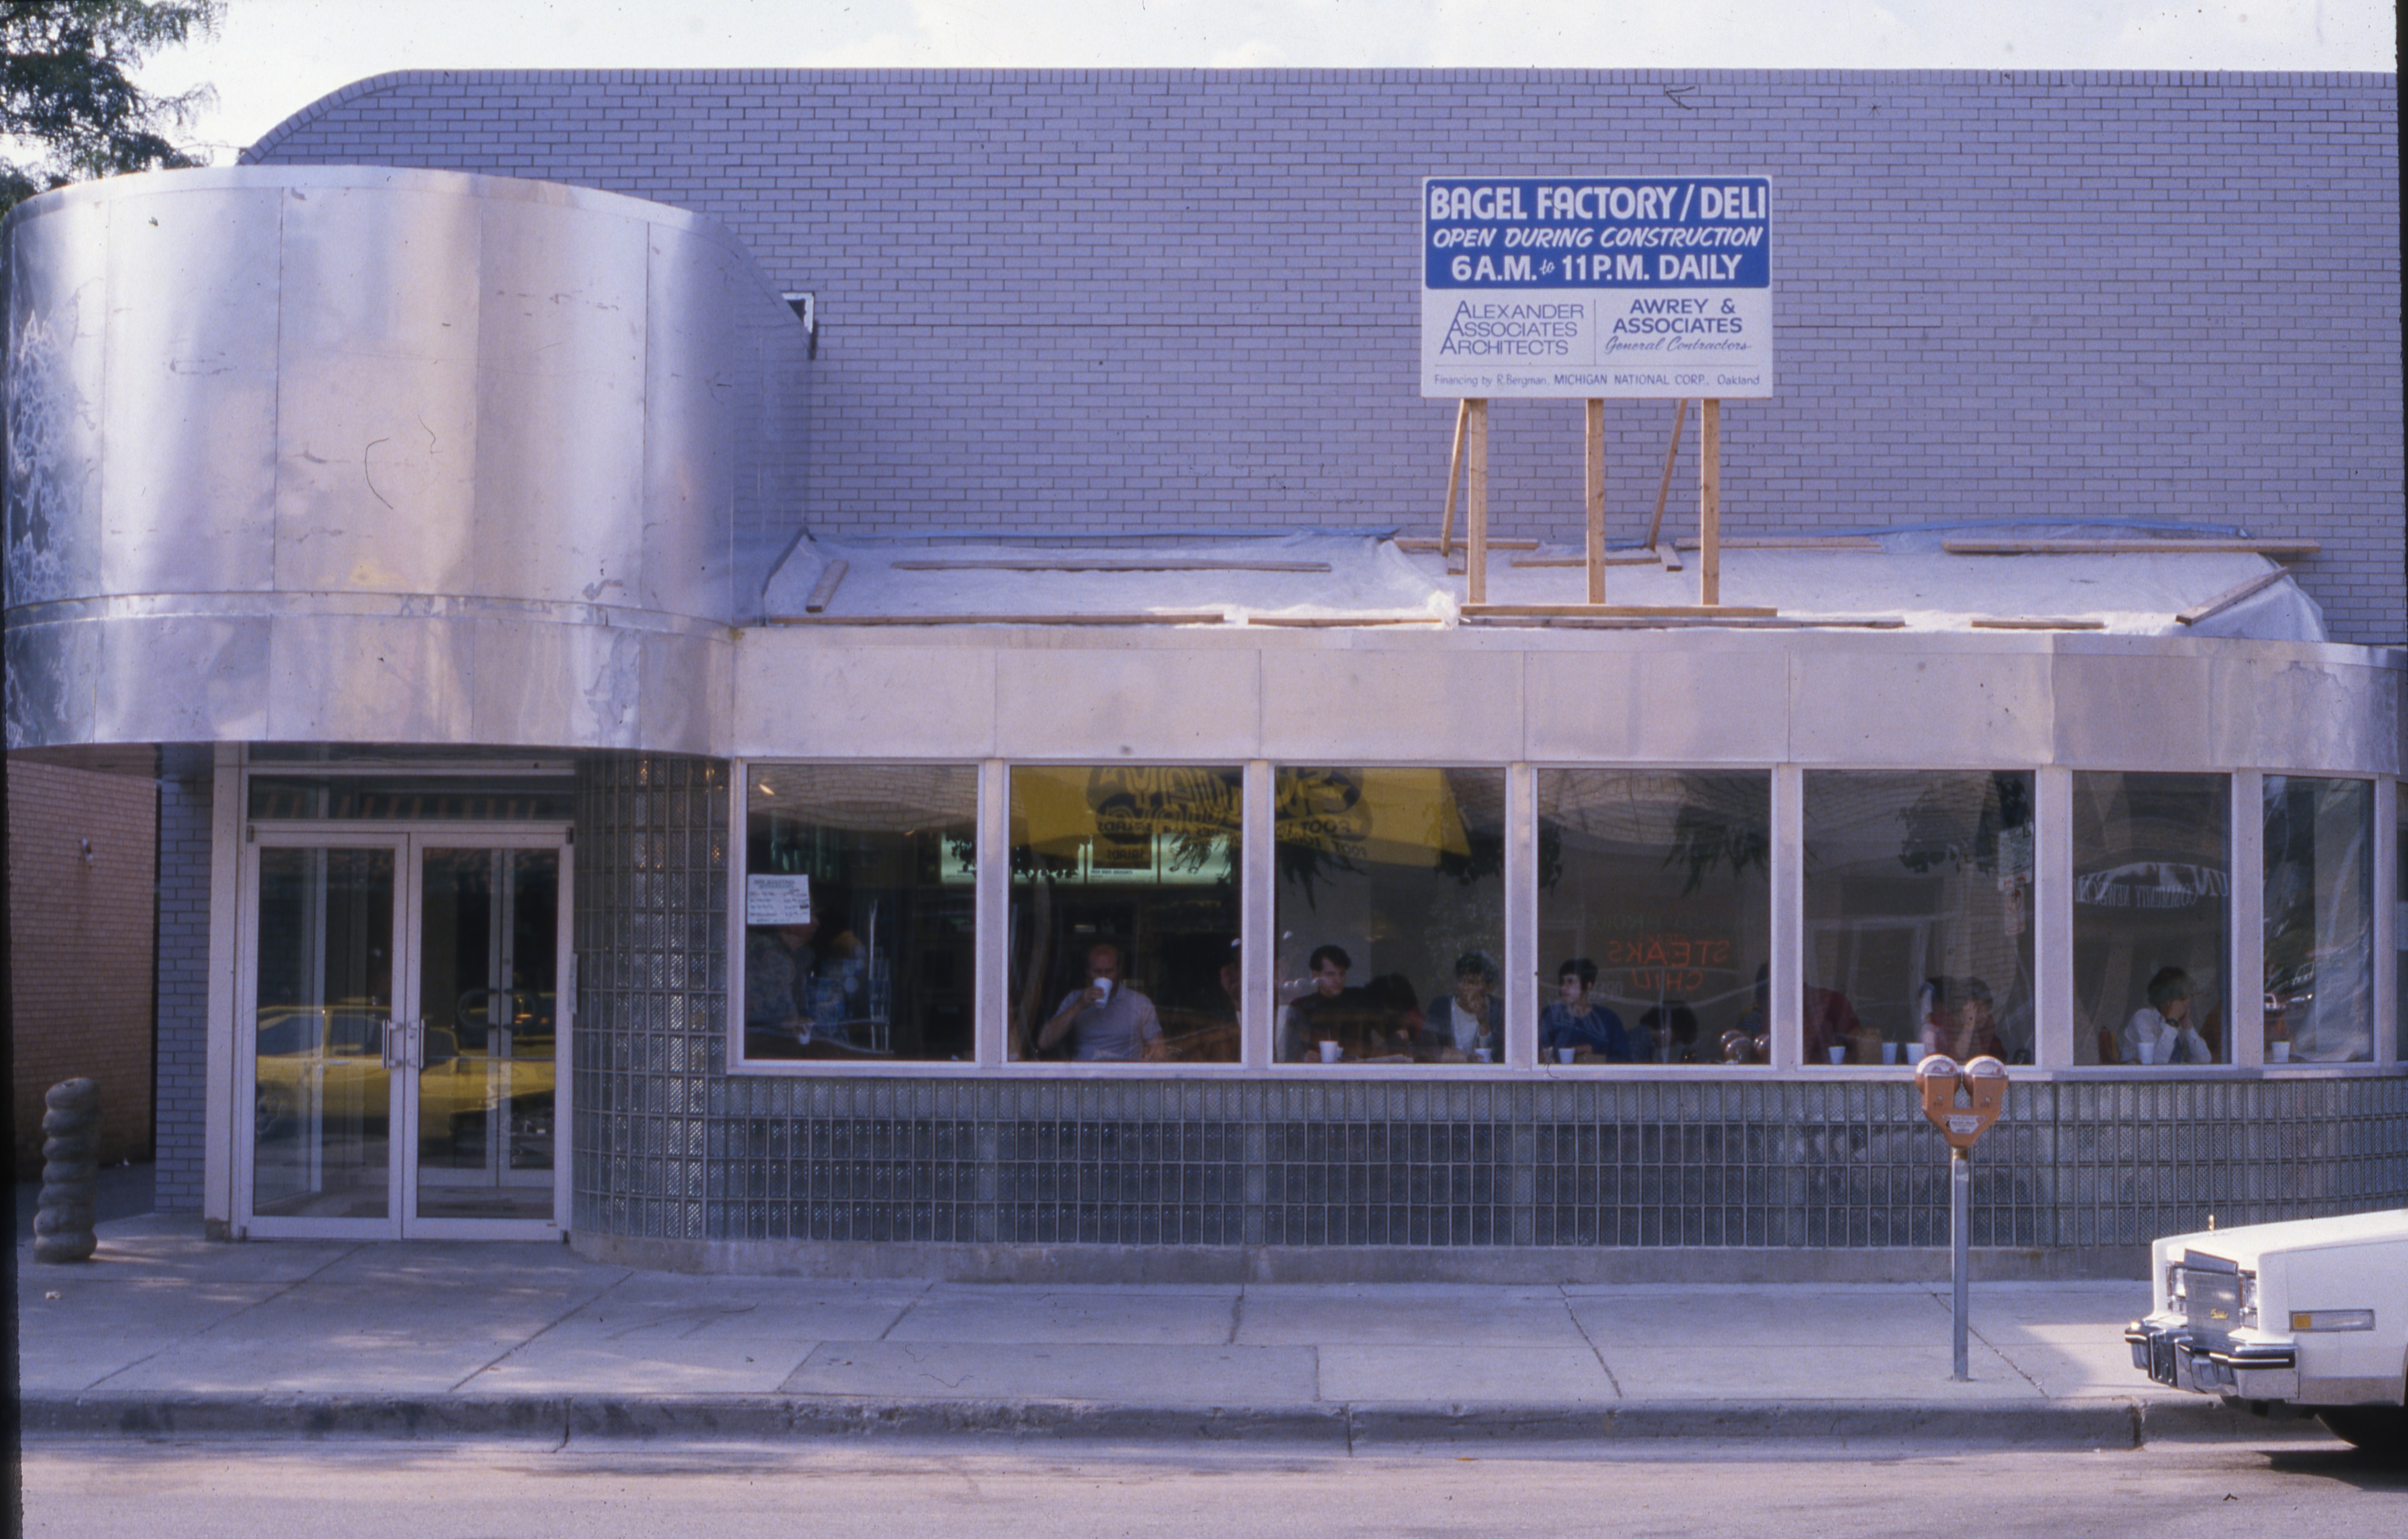 Expansion and Remodeling At The Bagel Factory, May 1986 image